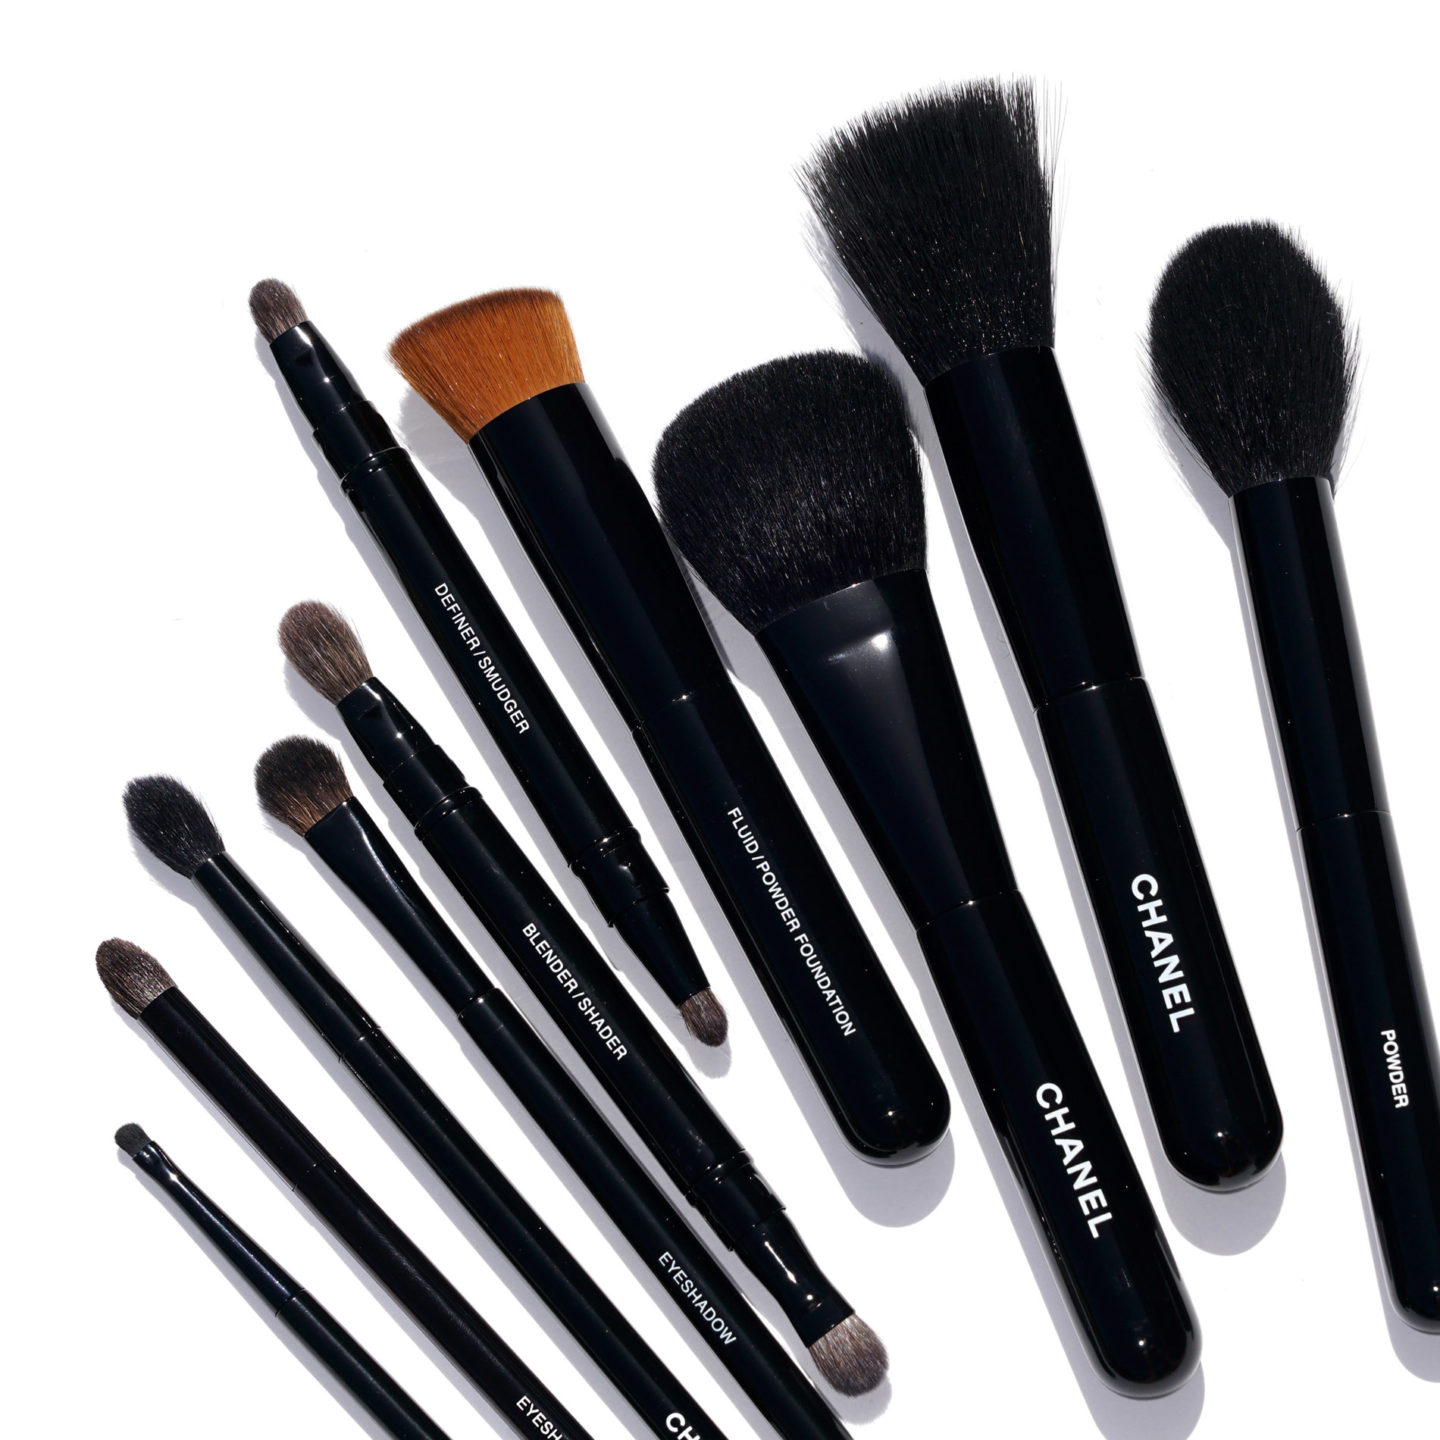 Chanel Makeup Brushes New Design | The Beauty Look Book